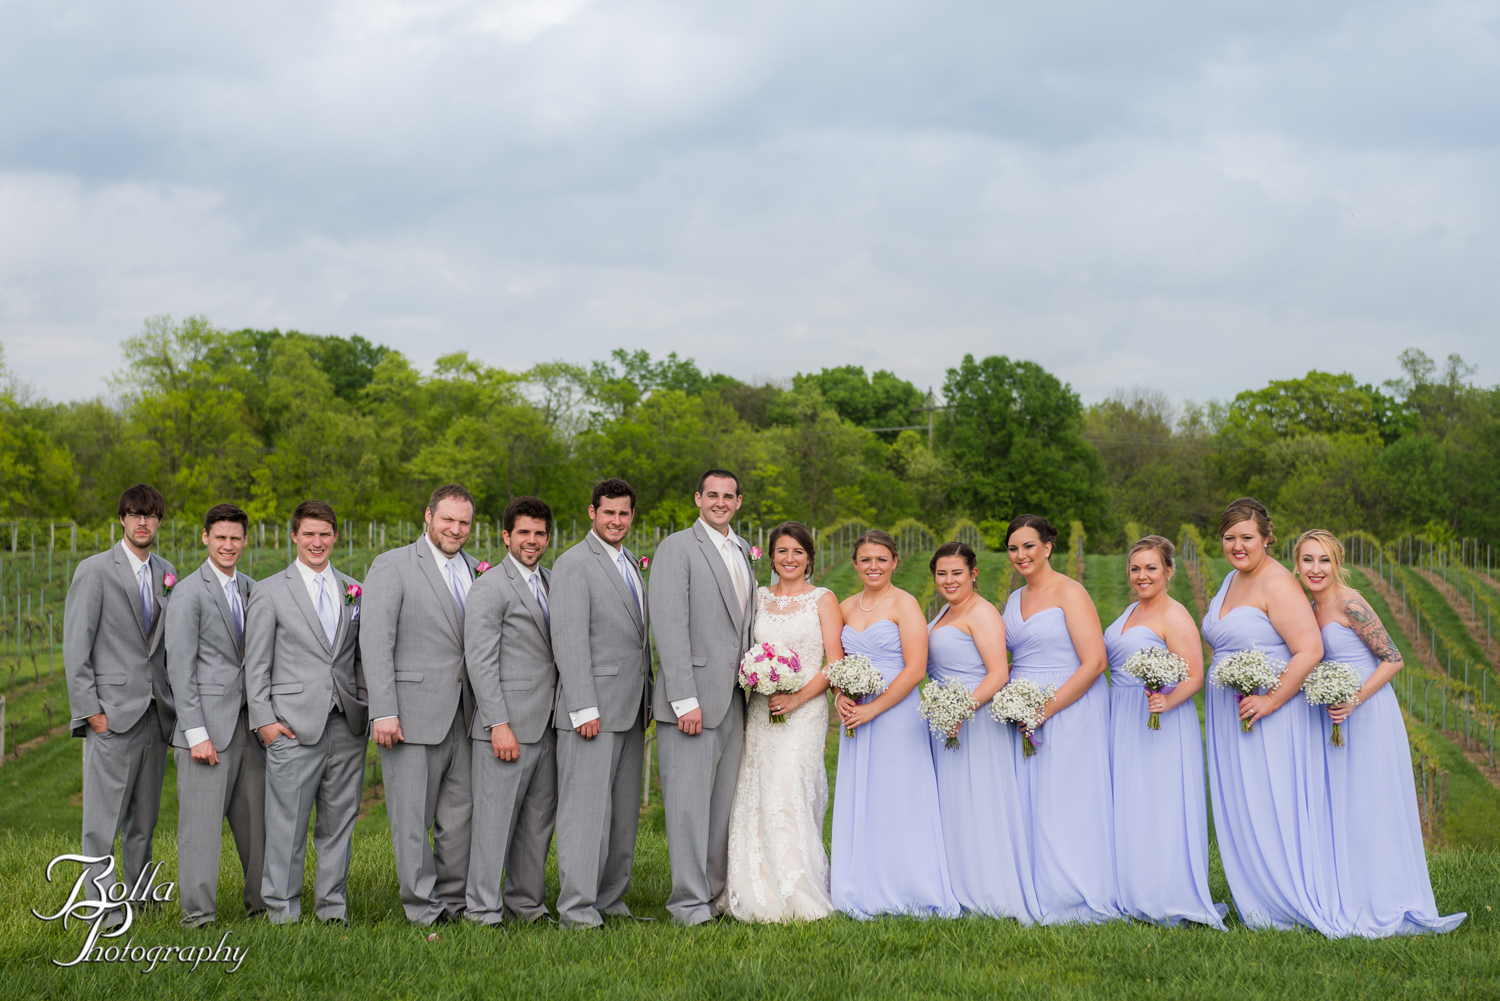 Bolla_Photography_St_Louis_wedding_photographer_Villa_Marie_Winery-0270.jpg